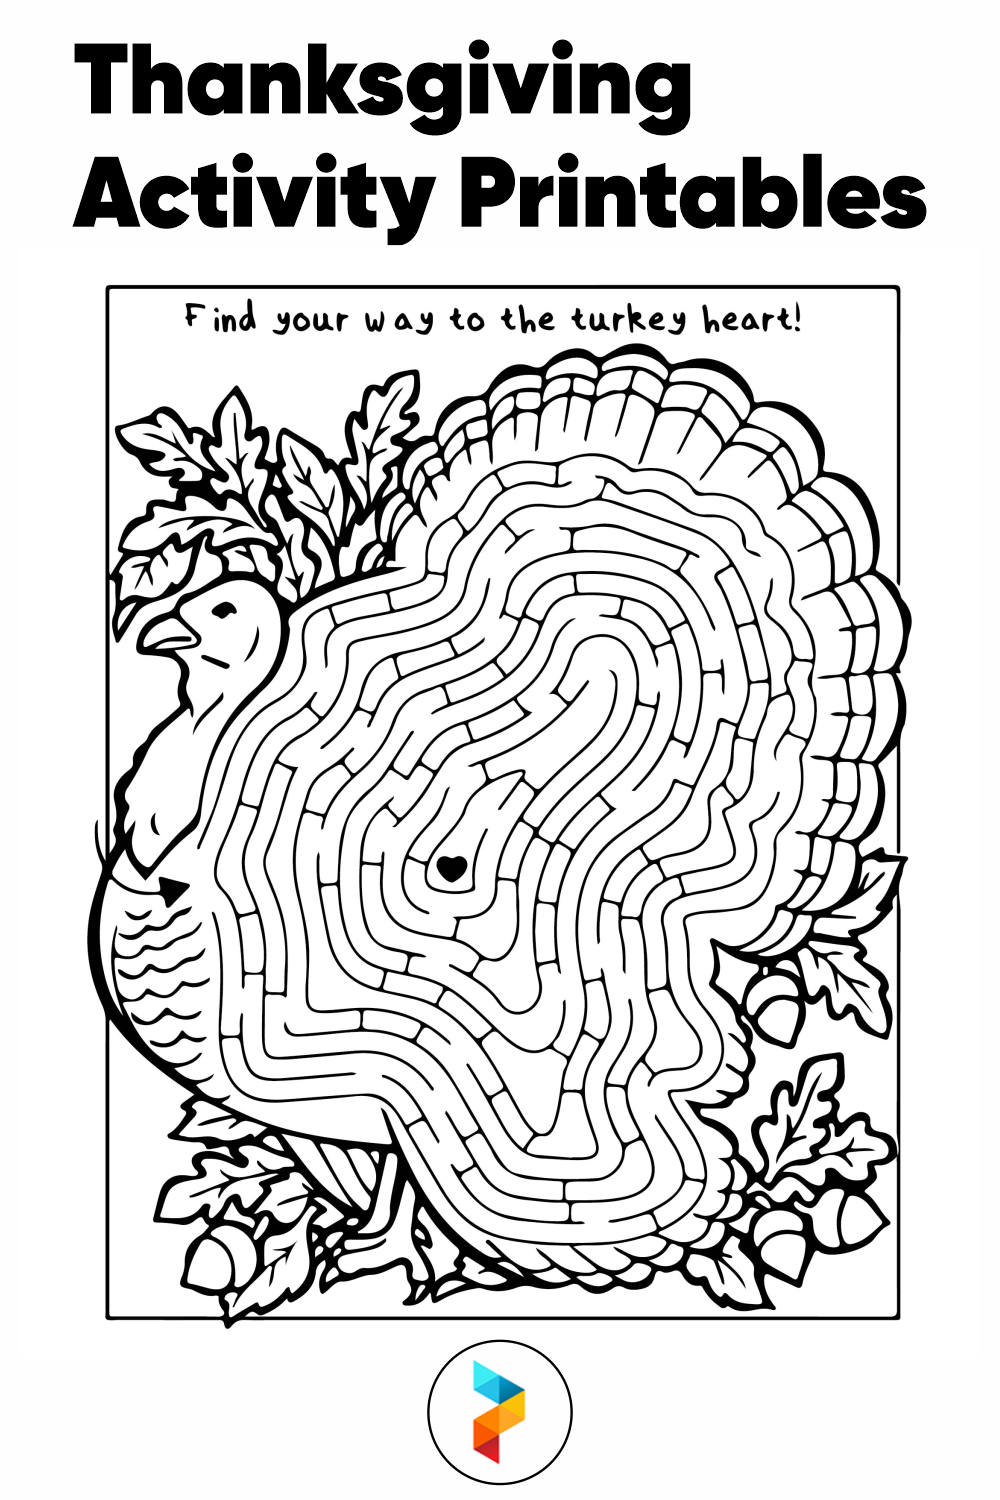 Thanksgiving Activity Printables